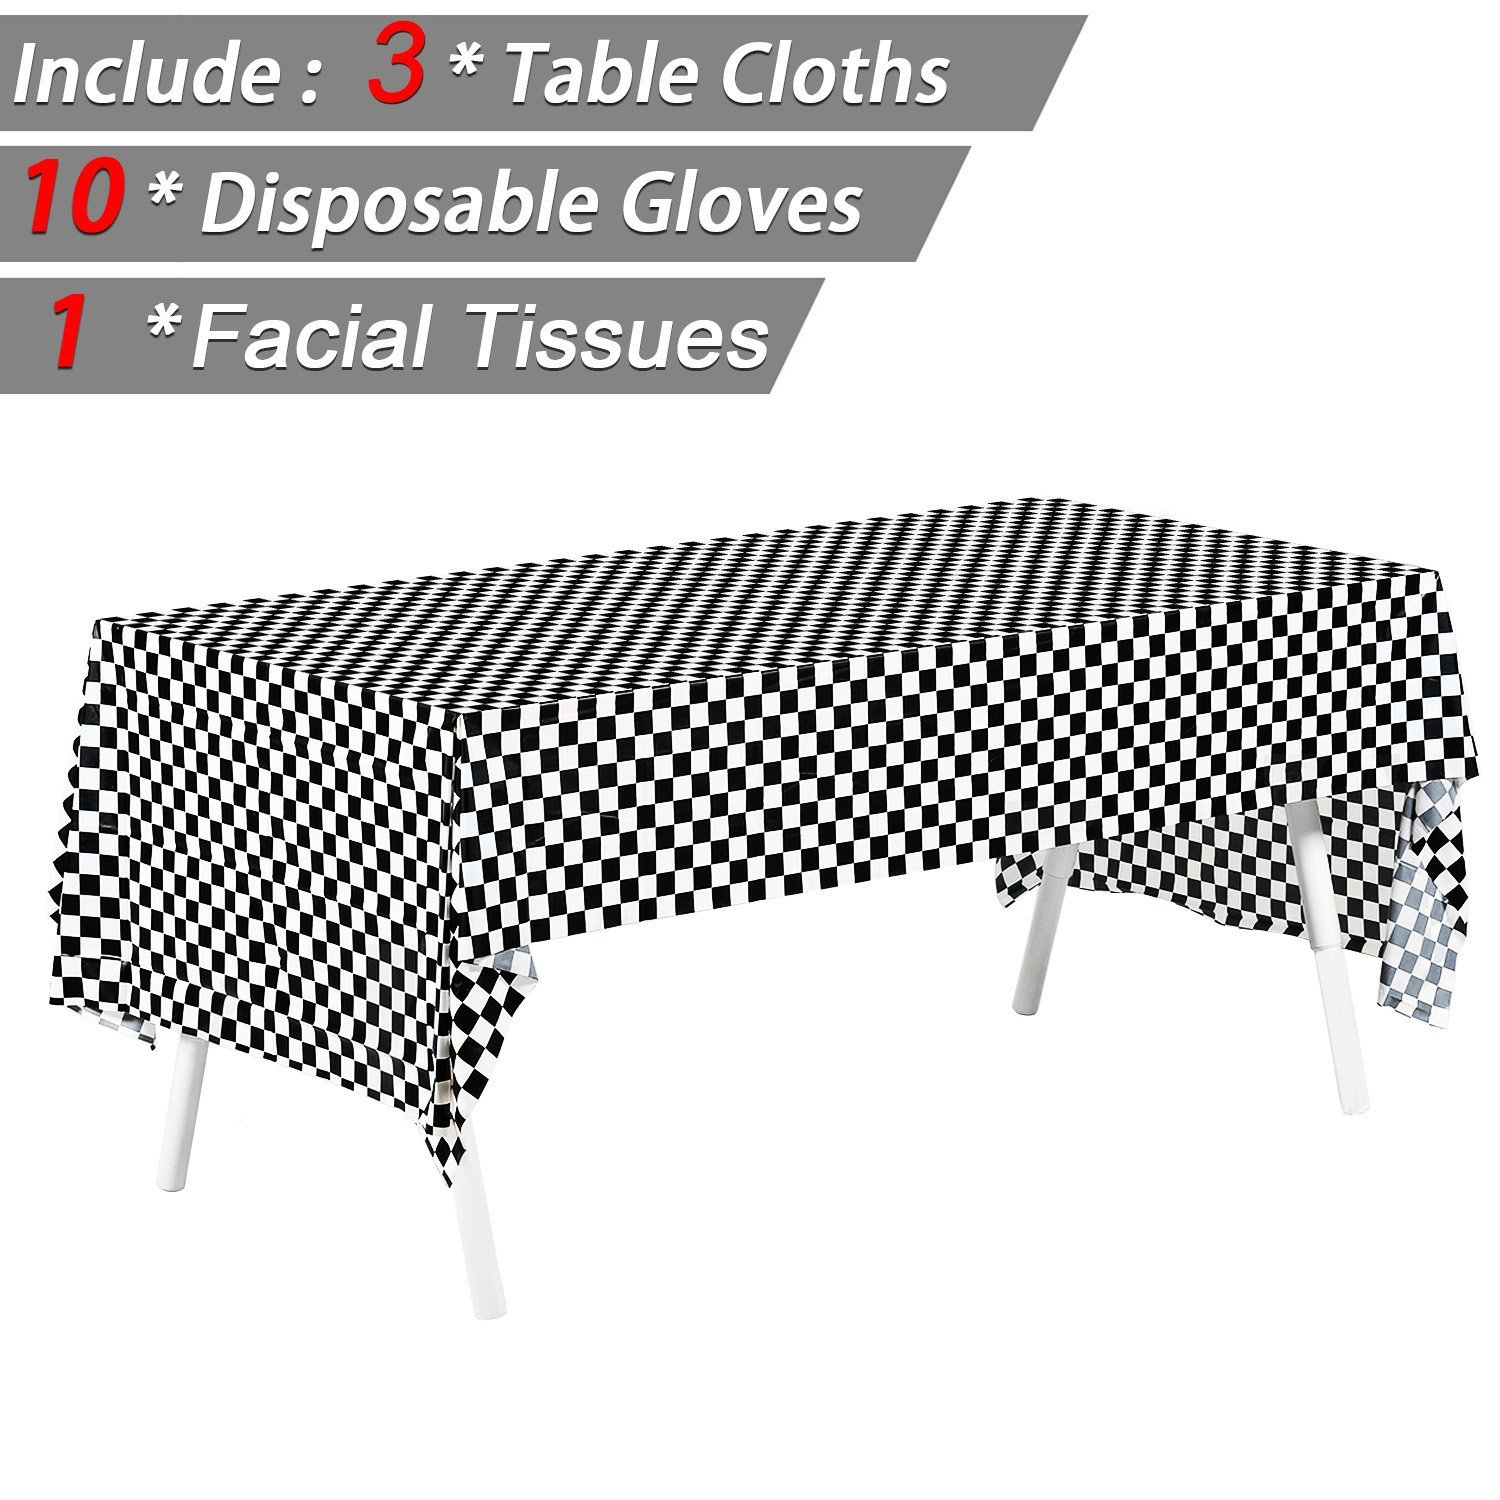 """Pack of 3, 54"""" x 108"""" Black & White Checkered Flag Tablecloths Disposable Tablecovers Party Favor, Picnic Table Covers - Include 10 Pairs Plastic Disposable Gloves + 1 pack Facial Tissues"""